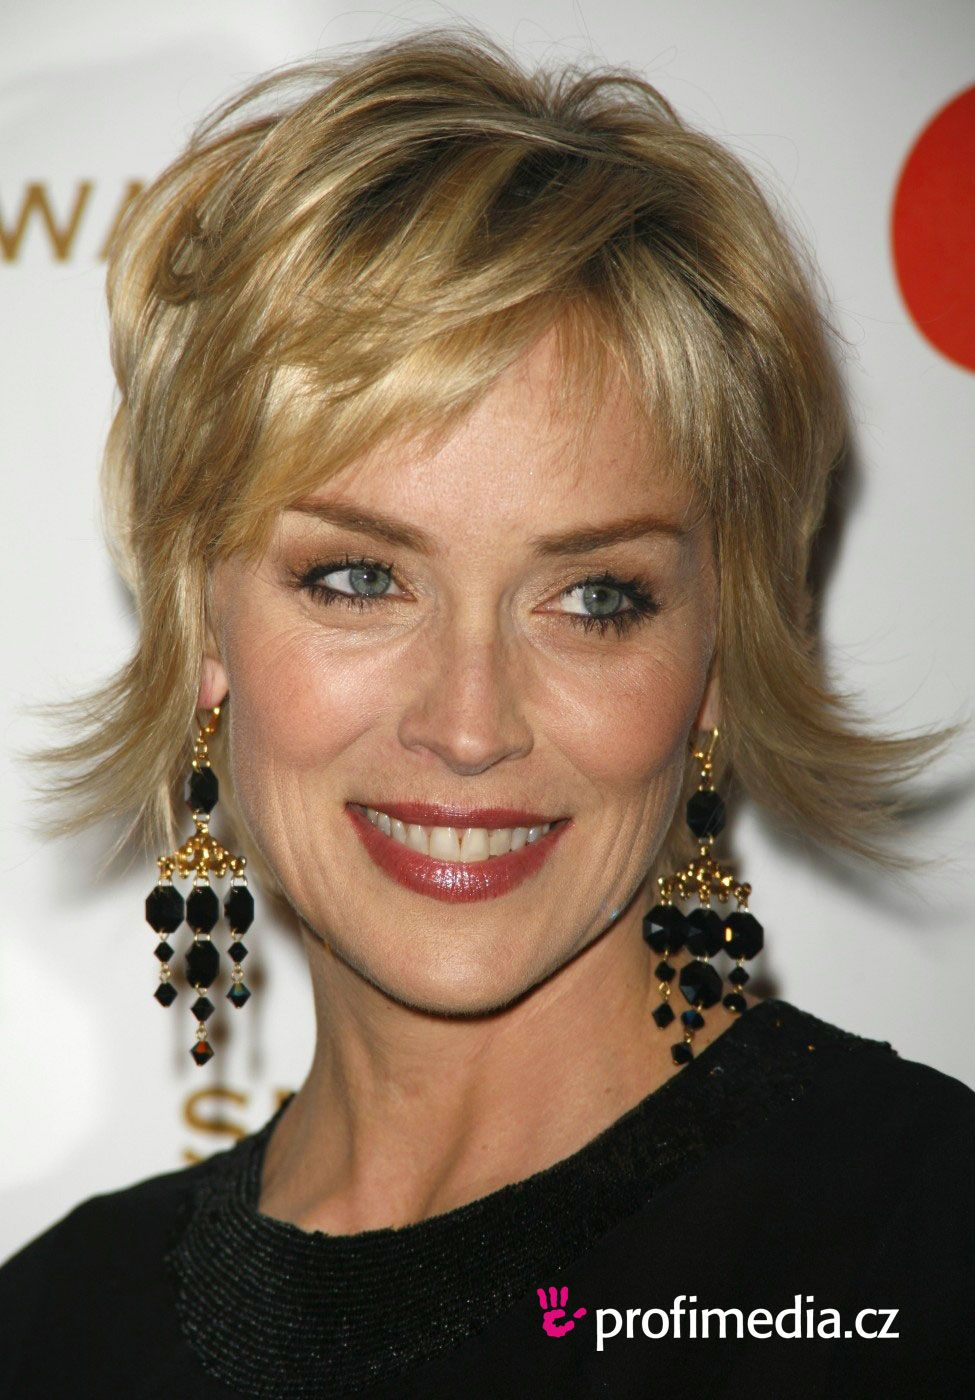 Sharon Stone Hairstyles Prom Hairstyle Sharon Stone Sharon Stone Coiffure Coiffures Cheveux Gris Cheveux